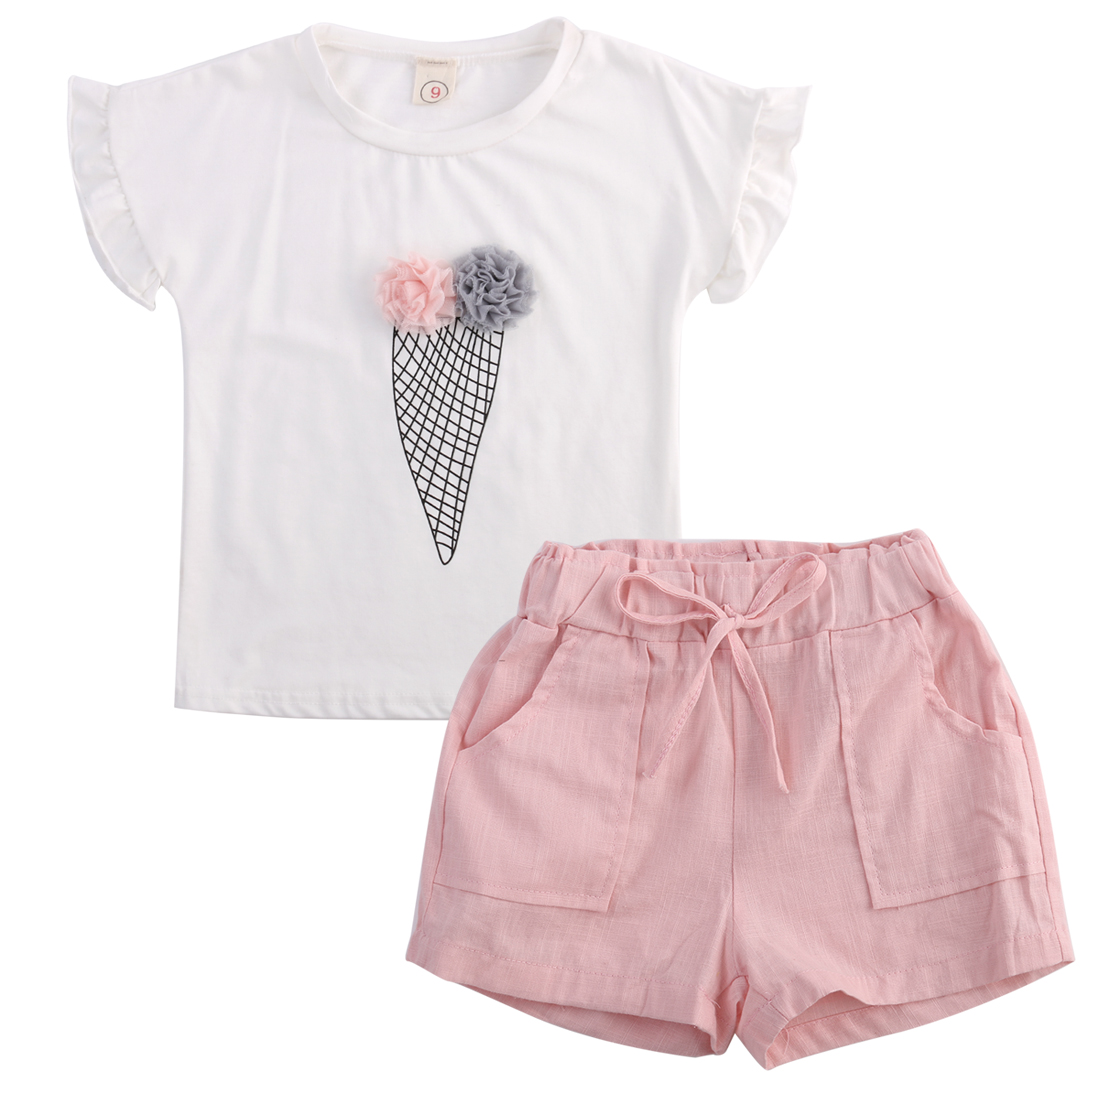 Baby-Kids-Girls-Headband-T-shirt-Pants-Shorts-clothing-Summer-Outfits-Clothes-Set-3